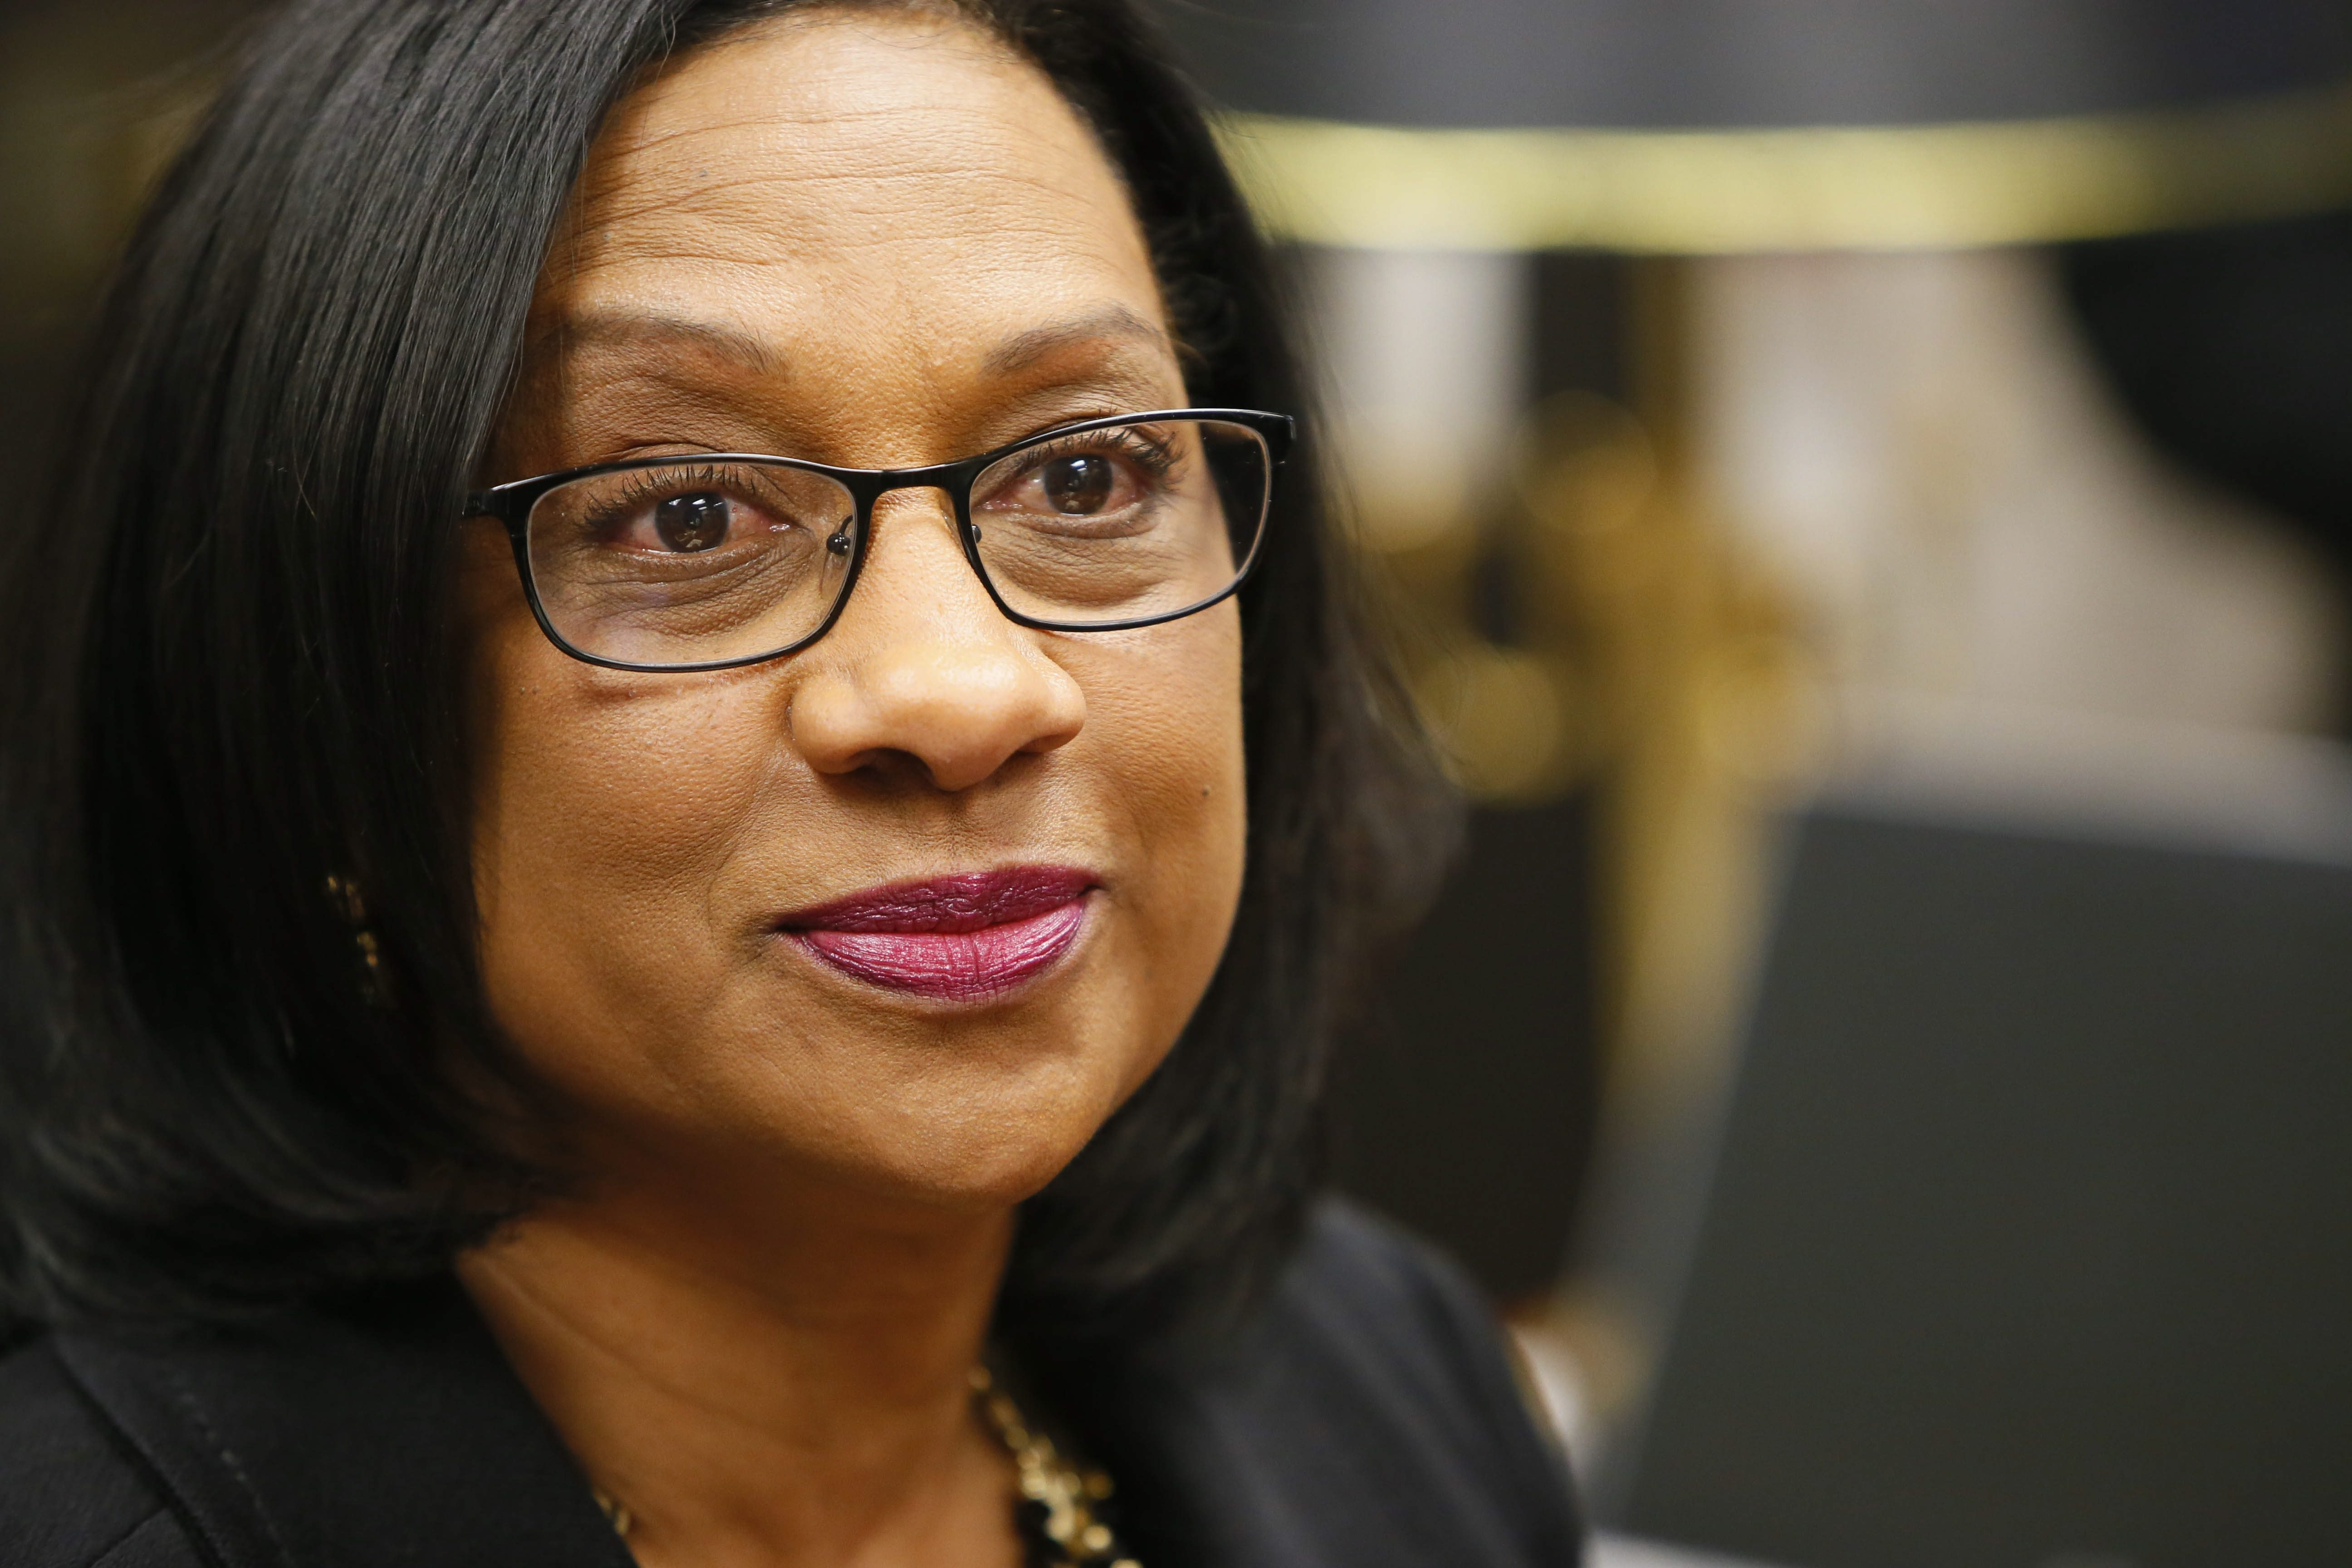 It will be worth the buyout money to have Buffalo School Superintendent Pamela Brown make a quick, quiet exit from her job. (Derek Gee/Buffalo News file photo)